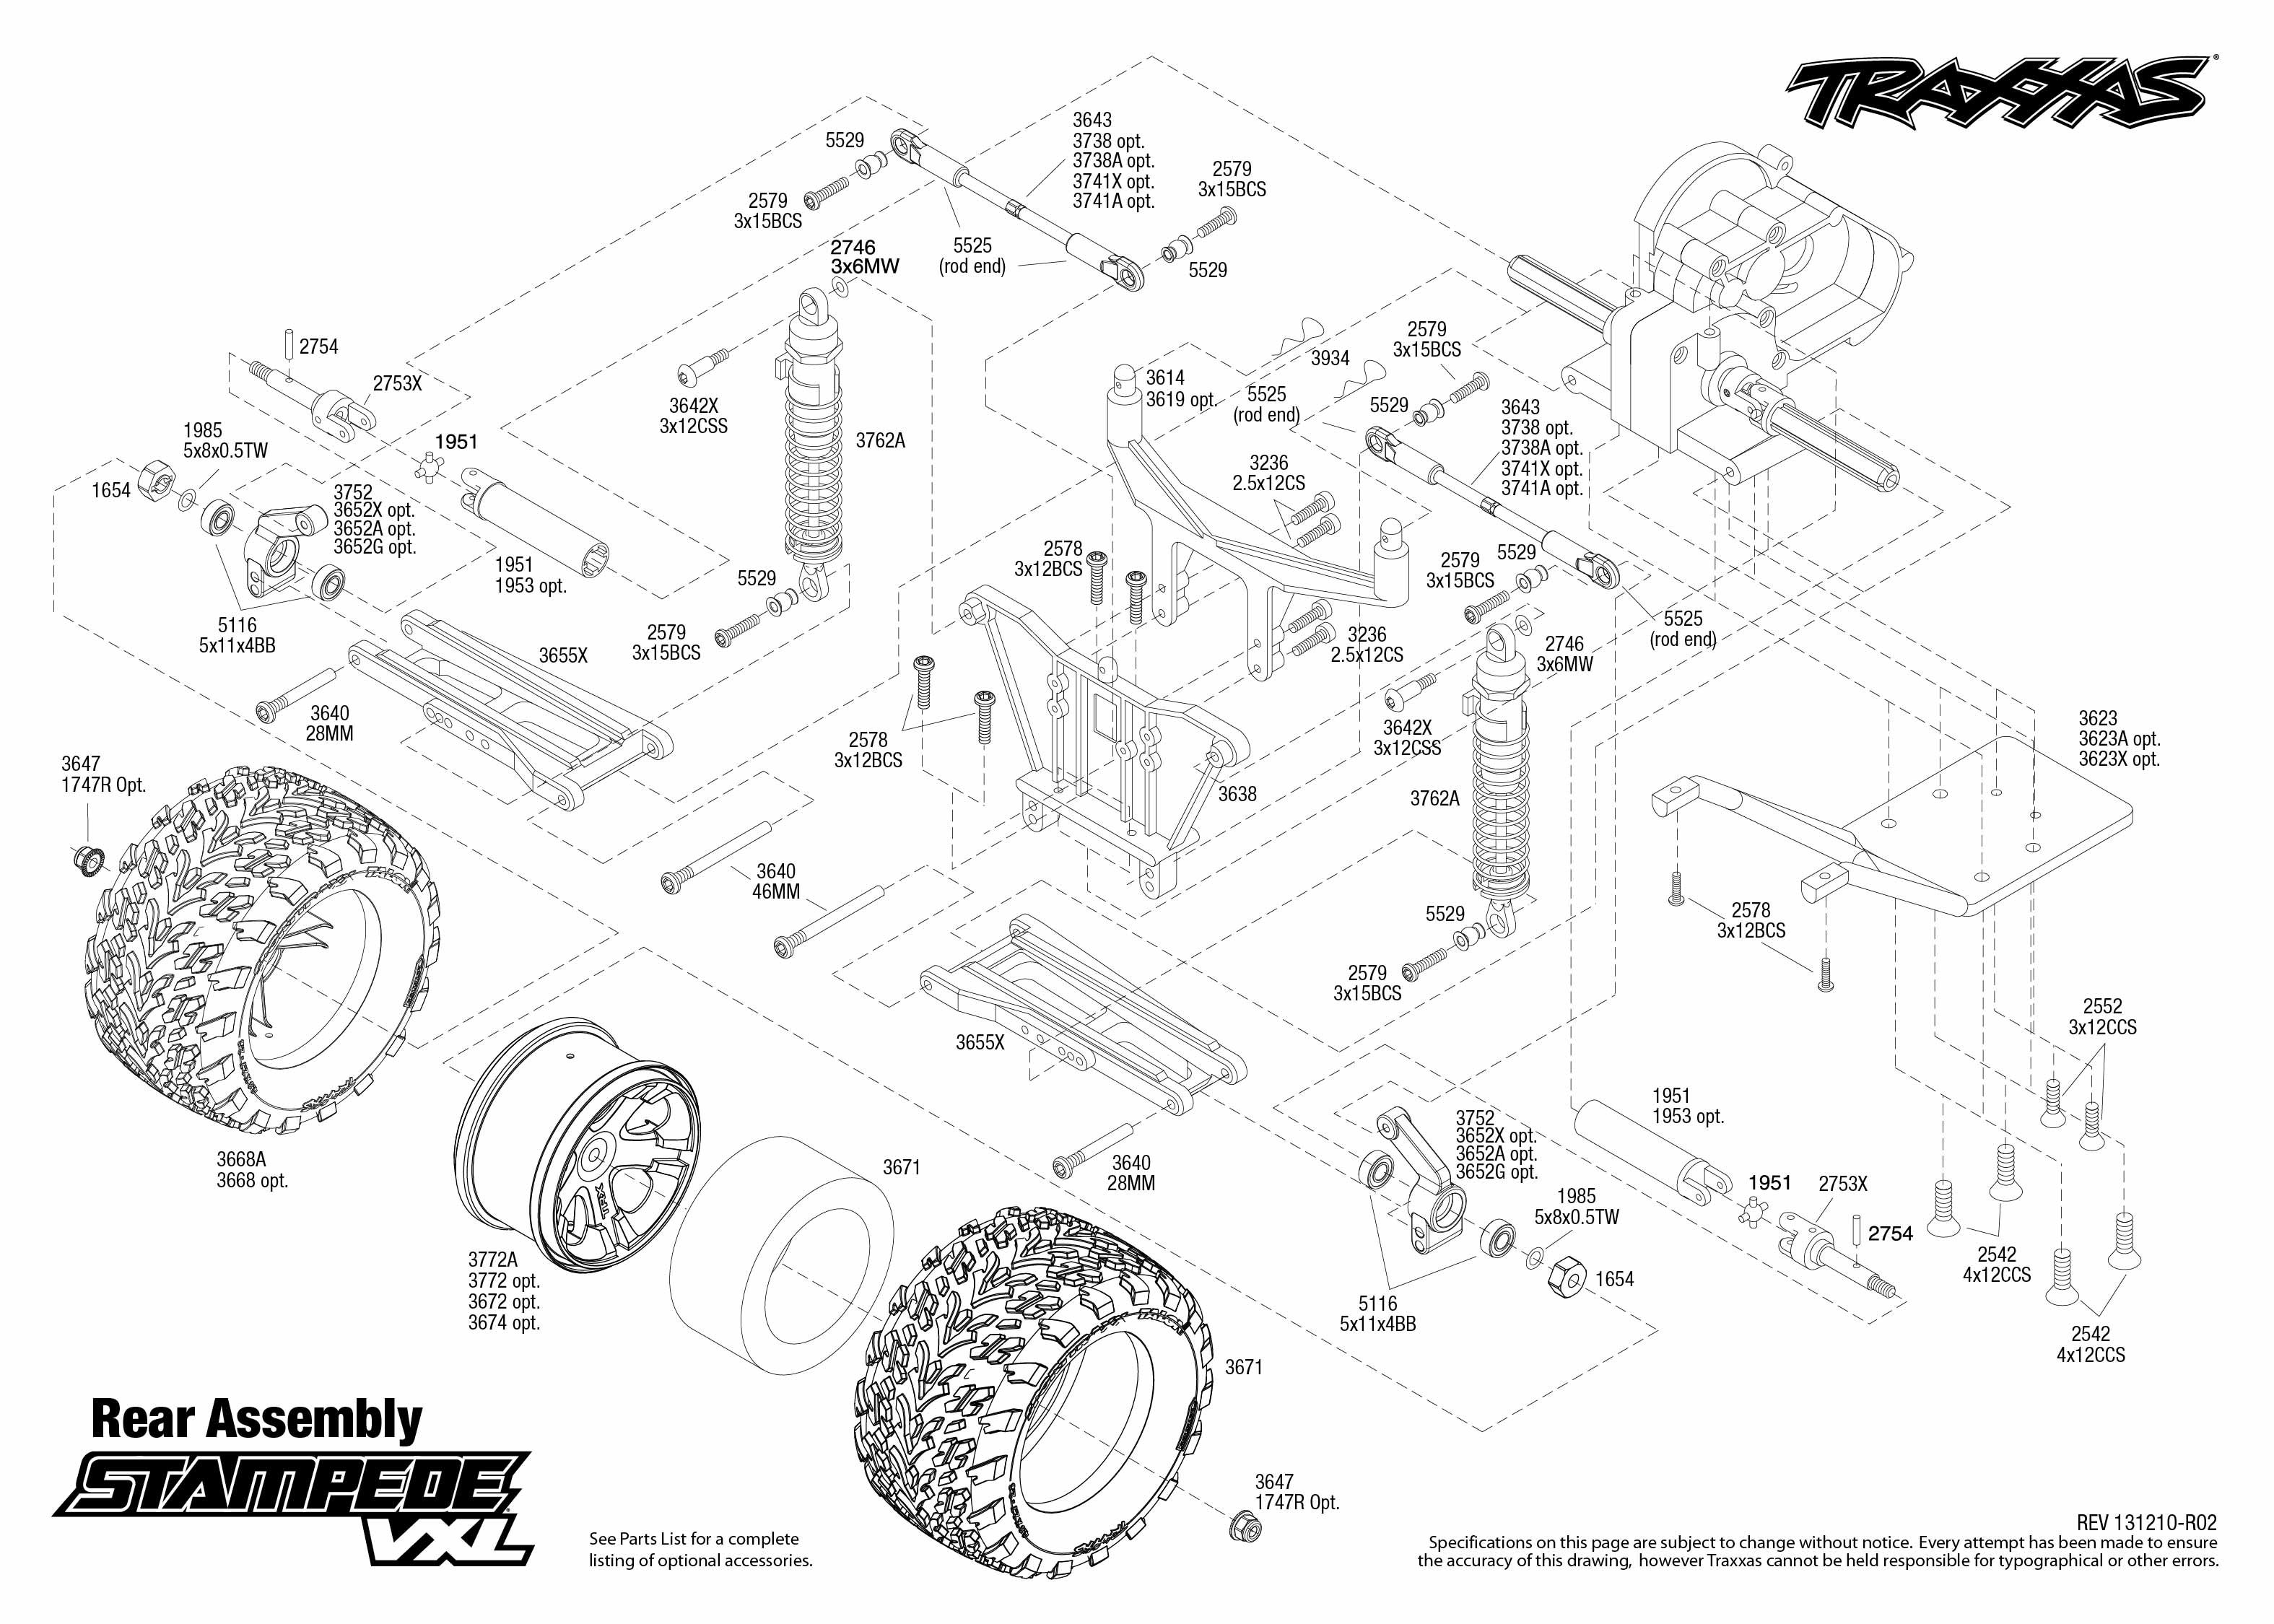 3607 rear exploded view traxxas rh traxxas com traxxas stampede 4x4 vxl parts diagram traxxas stampede parts manual